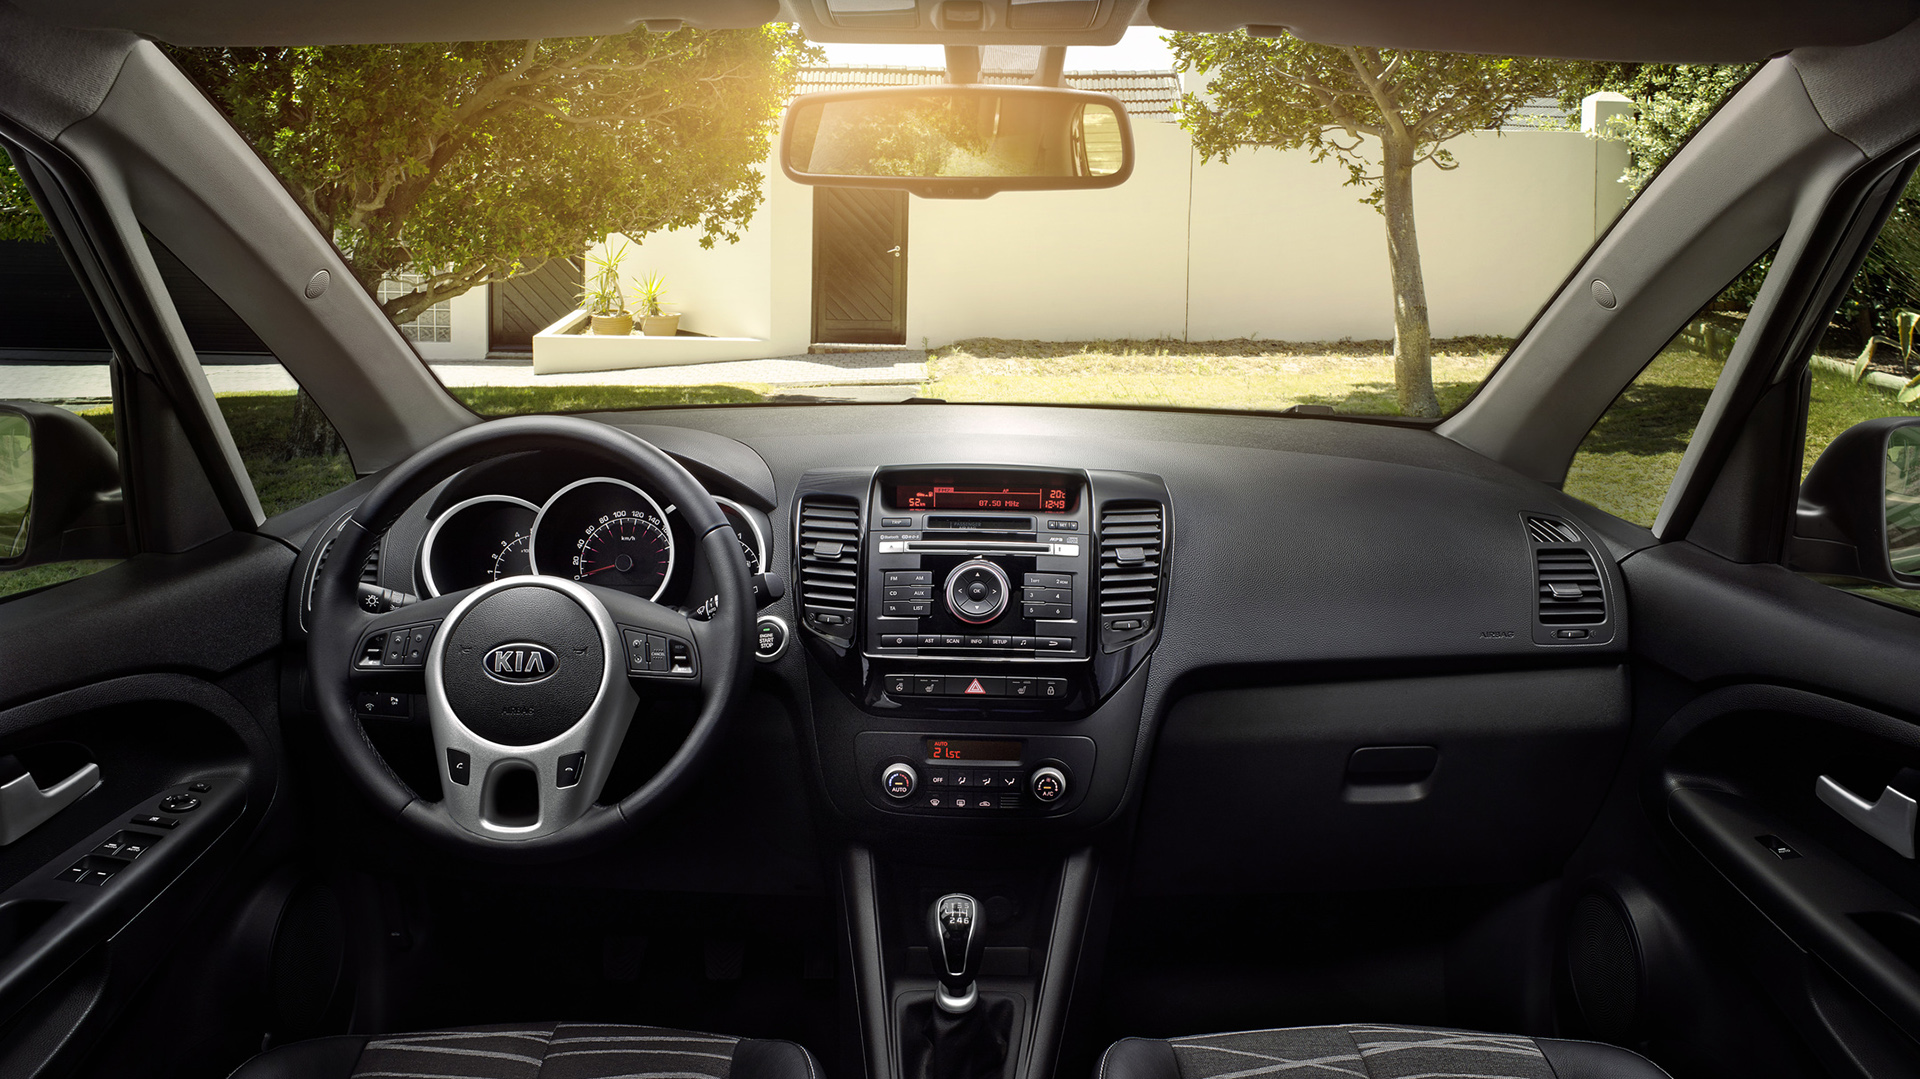 astonishing-design-of-the-black-dash-added-with-black-mp3-player-as-the-kia-venga-2015-interior-ideas